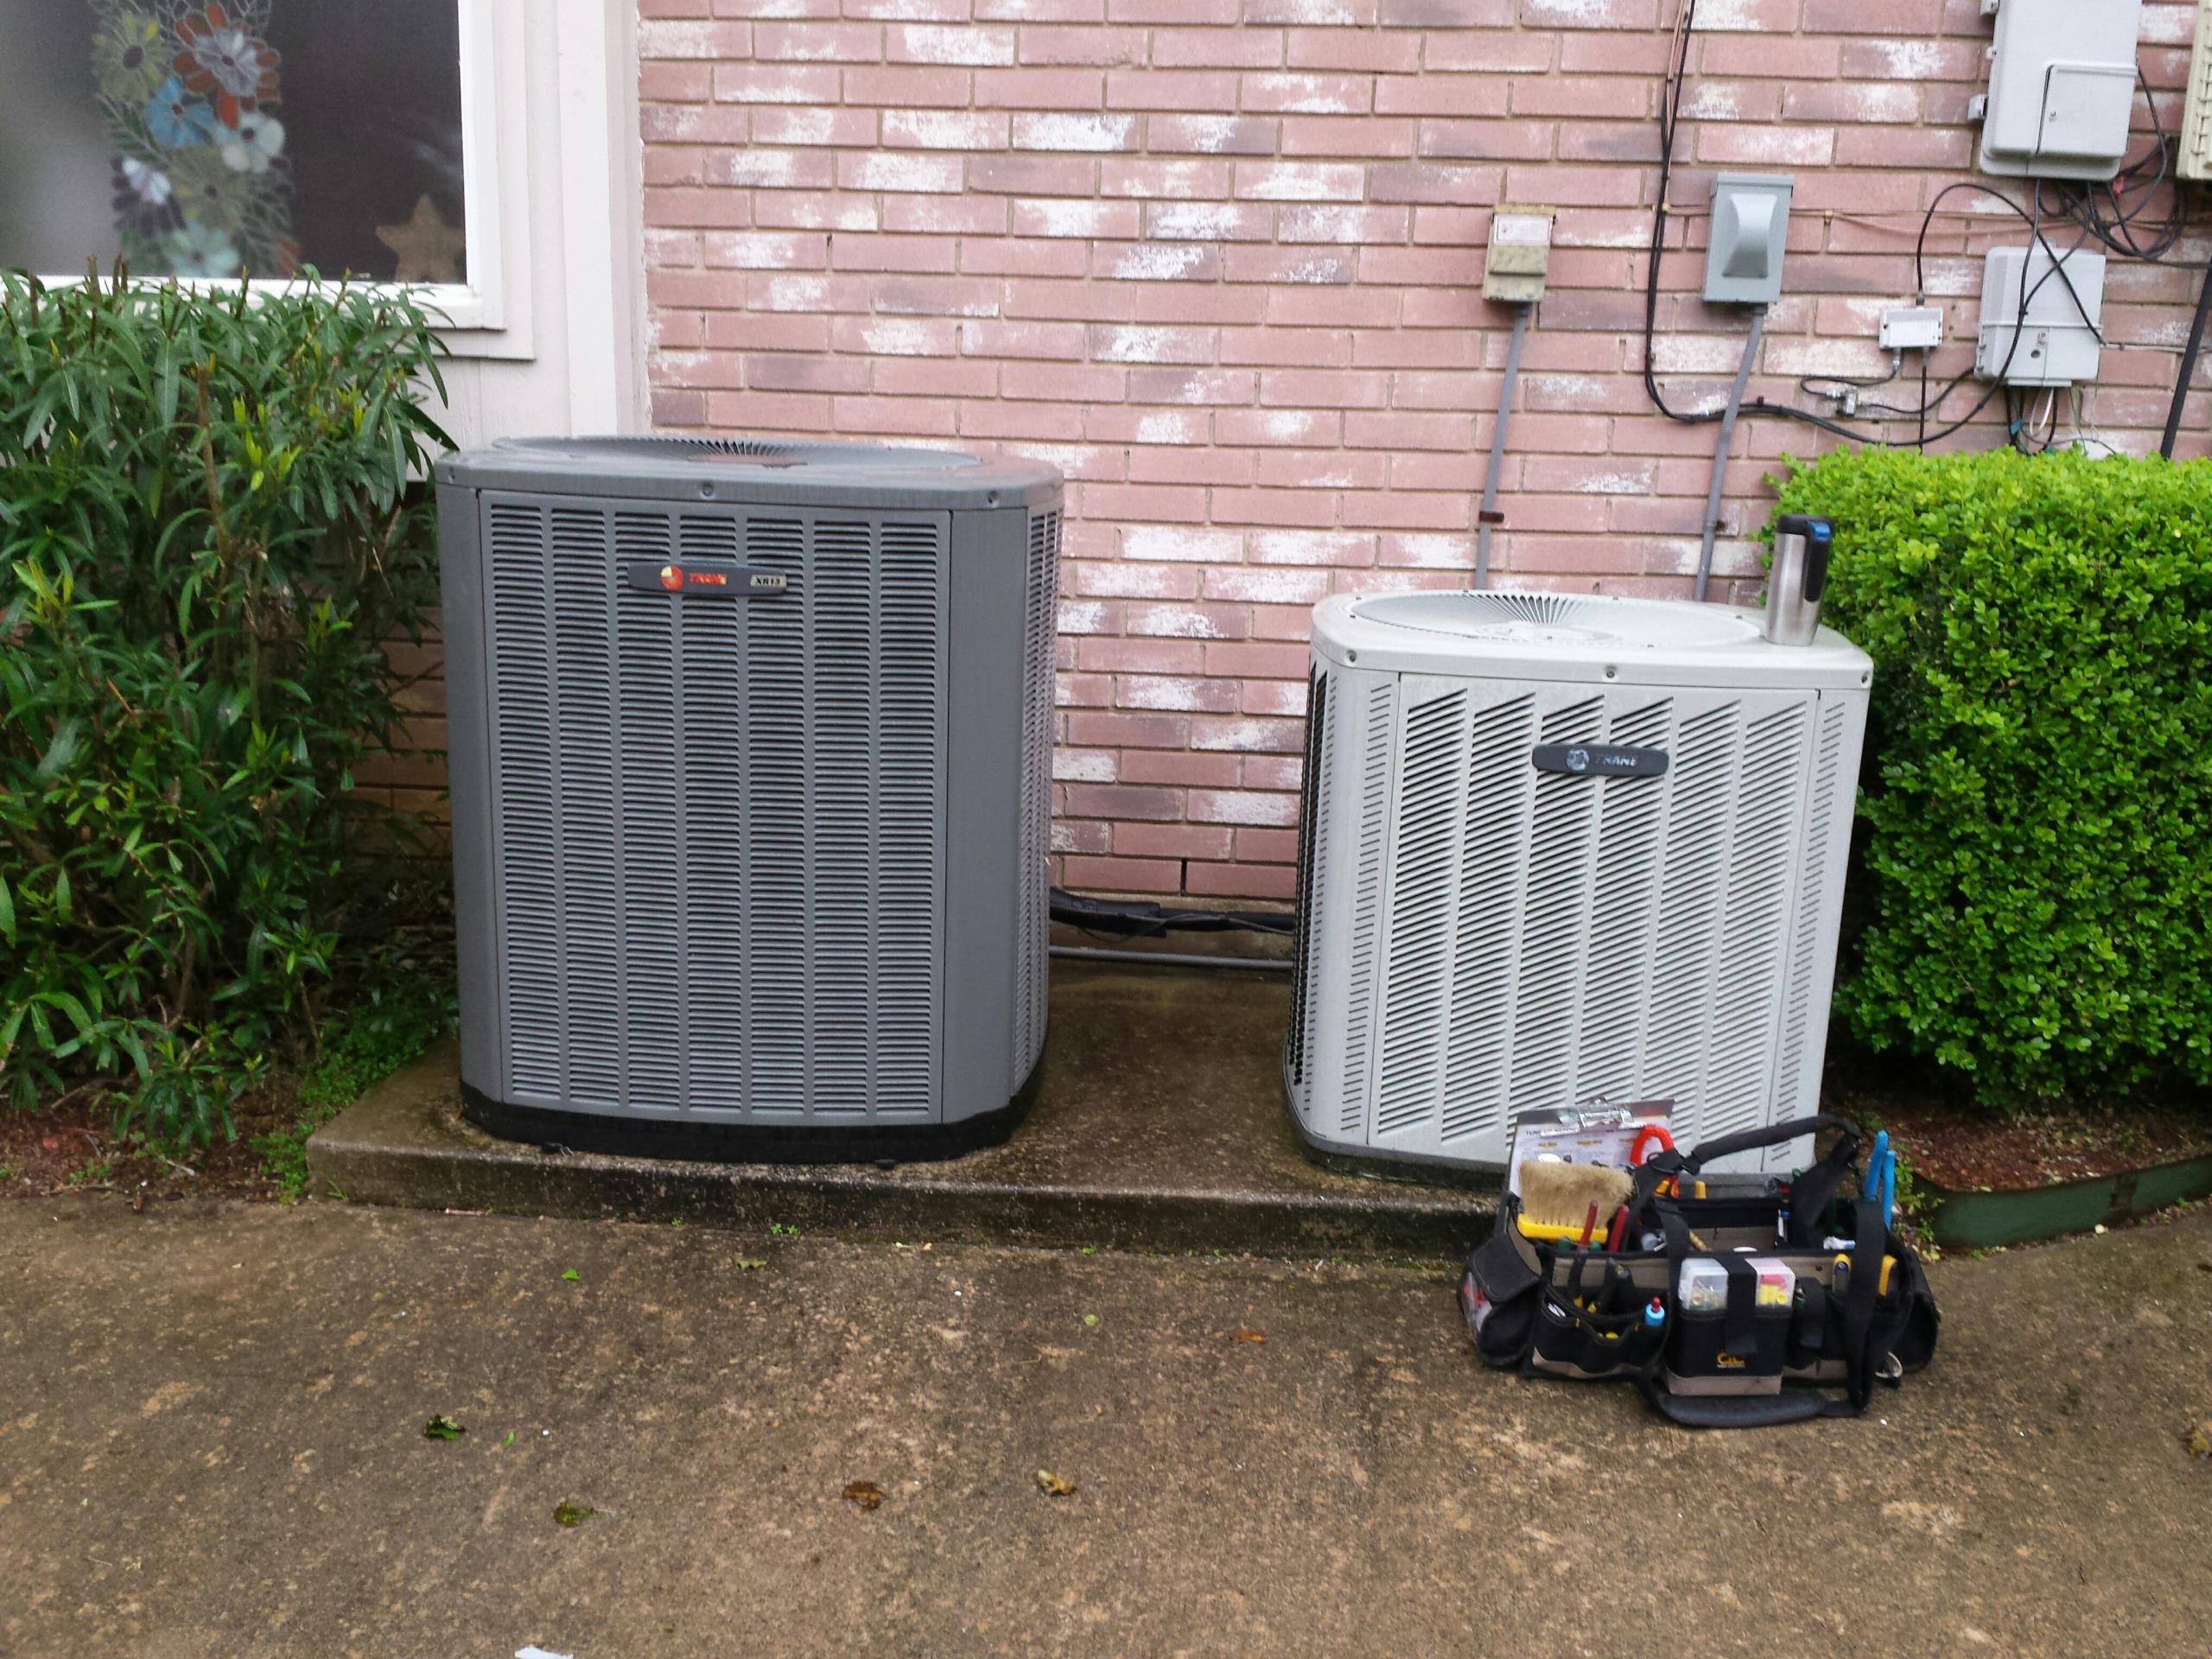 Highland Village, TX - Performing seasonal cooling tuneup and inspection on a TRANE system.